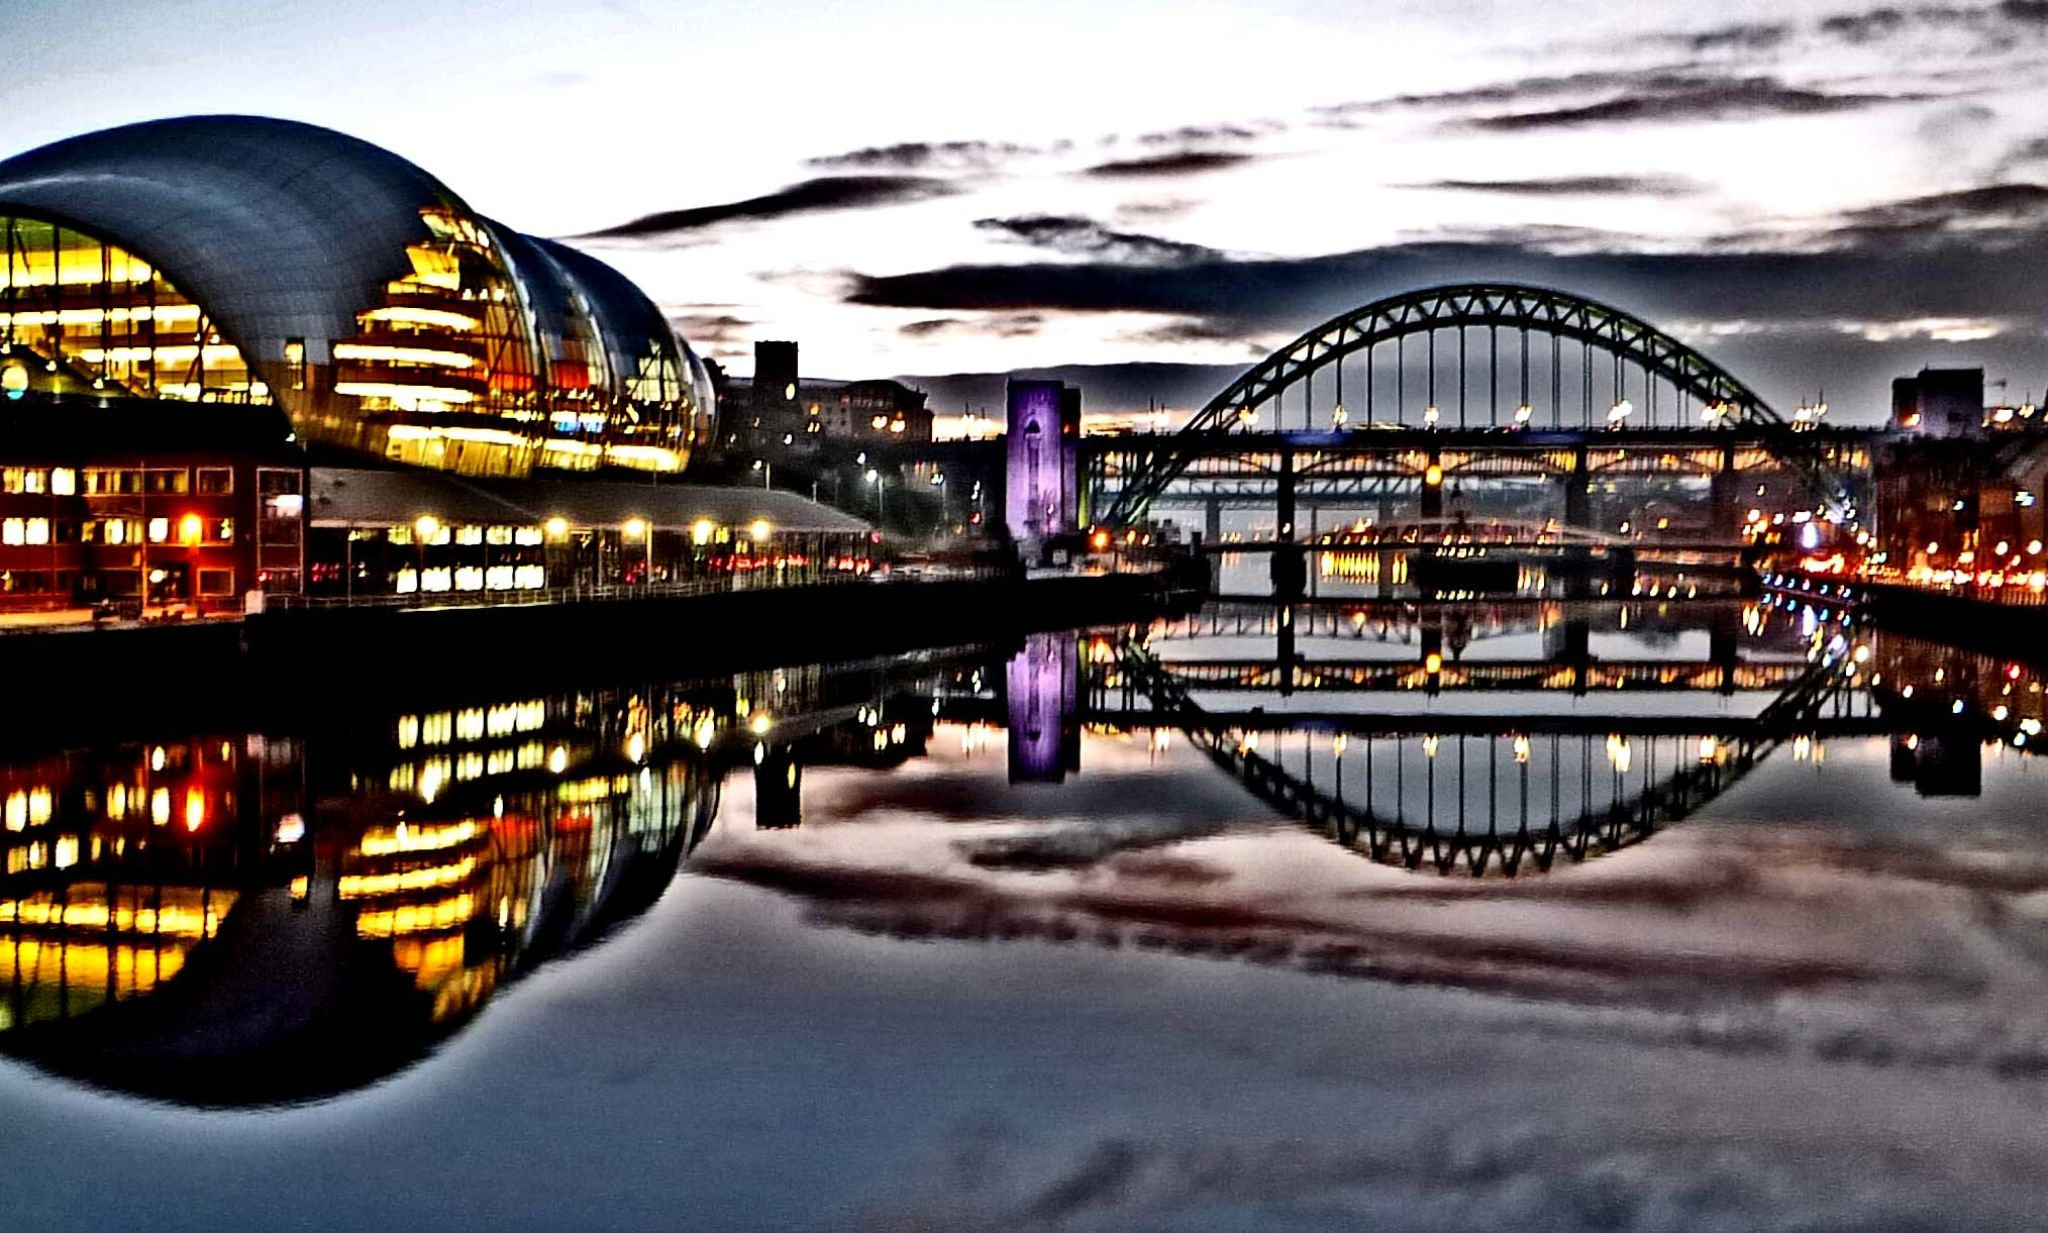 Reflections on the River Tyne by Darren Turner